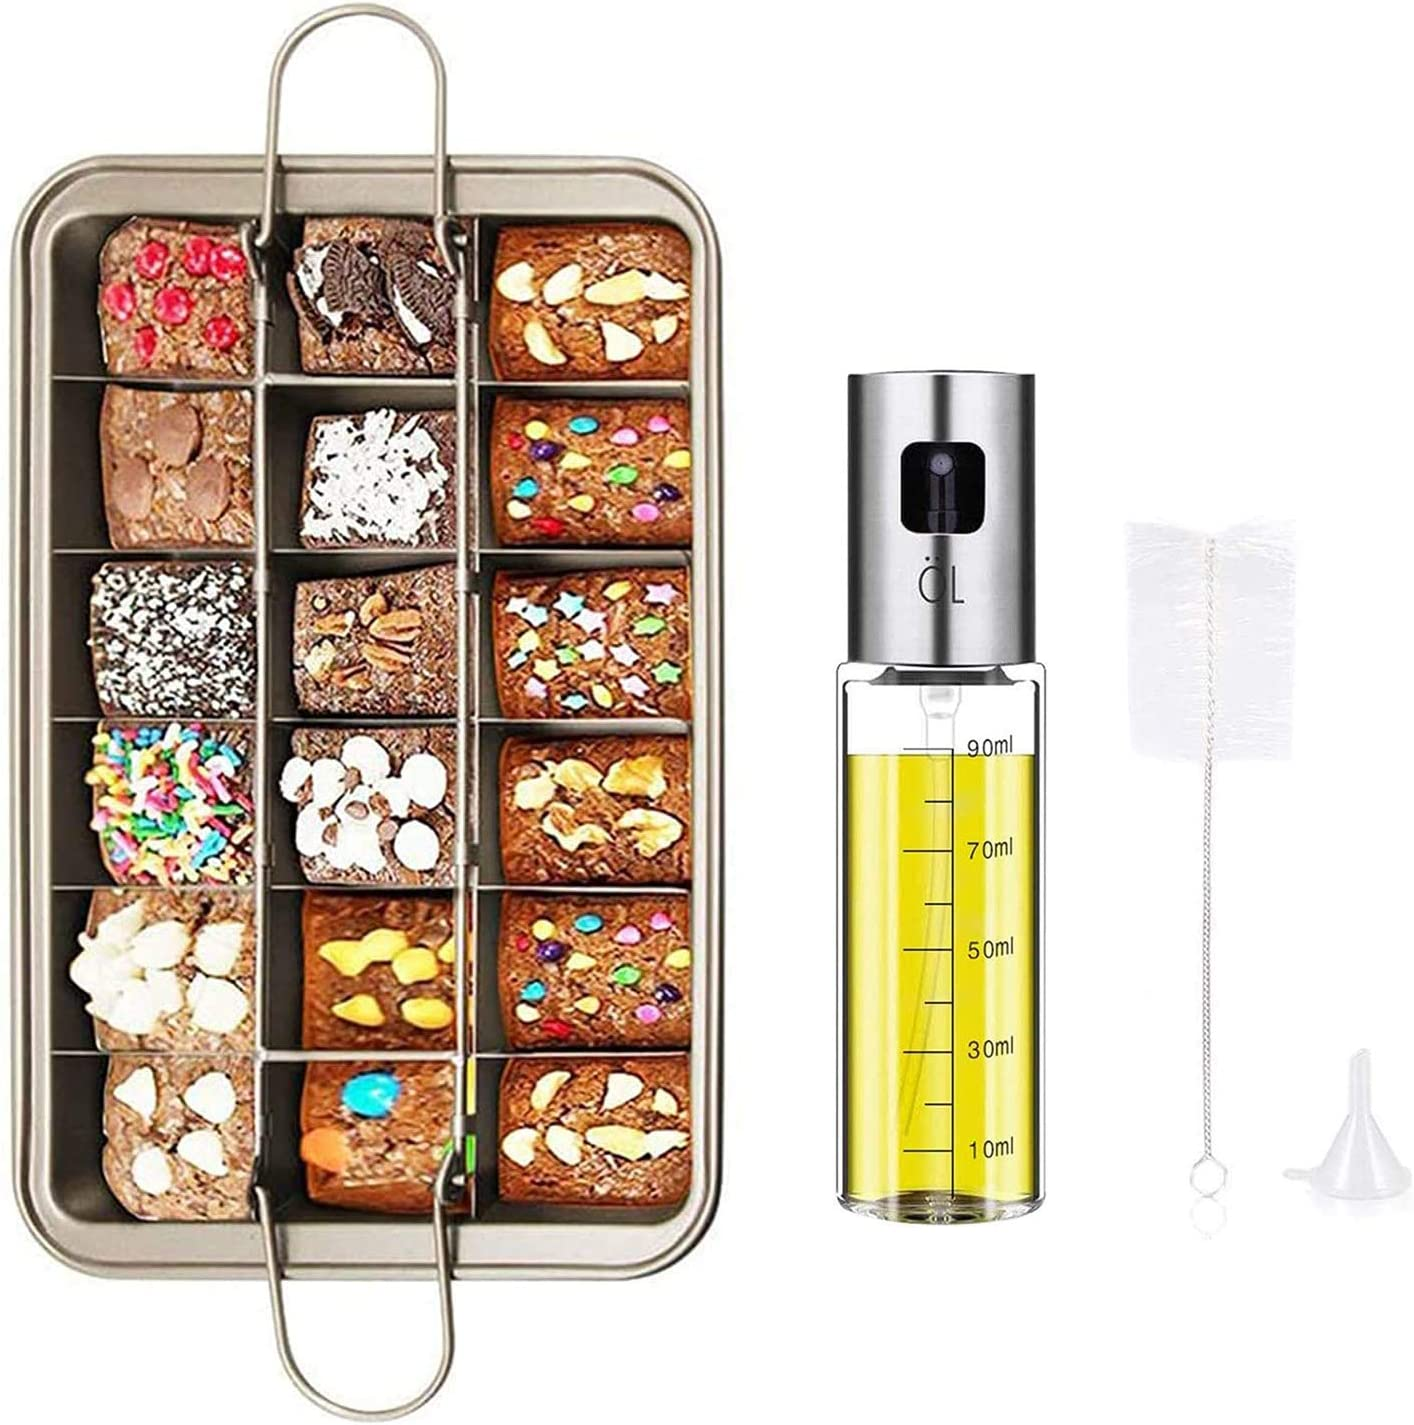 Olive Oil Sprayer Bottle and Brownie Pan Set, Stainless Steel Glass Oil Dispenser and Non Stick Brownie Pans With Dividers for Oven Baking, Cooking, Kitchen Tools